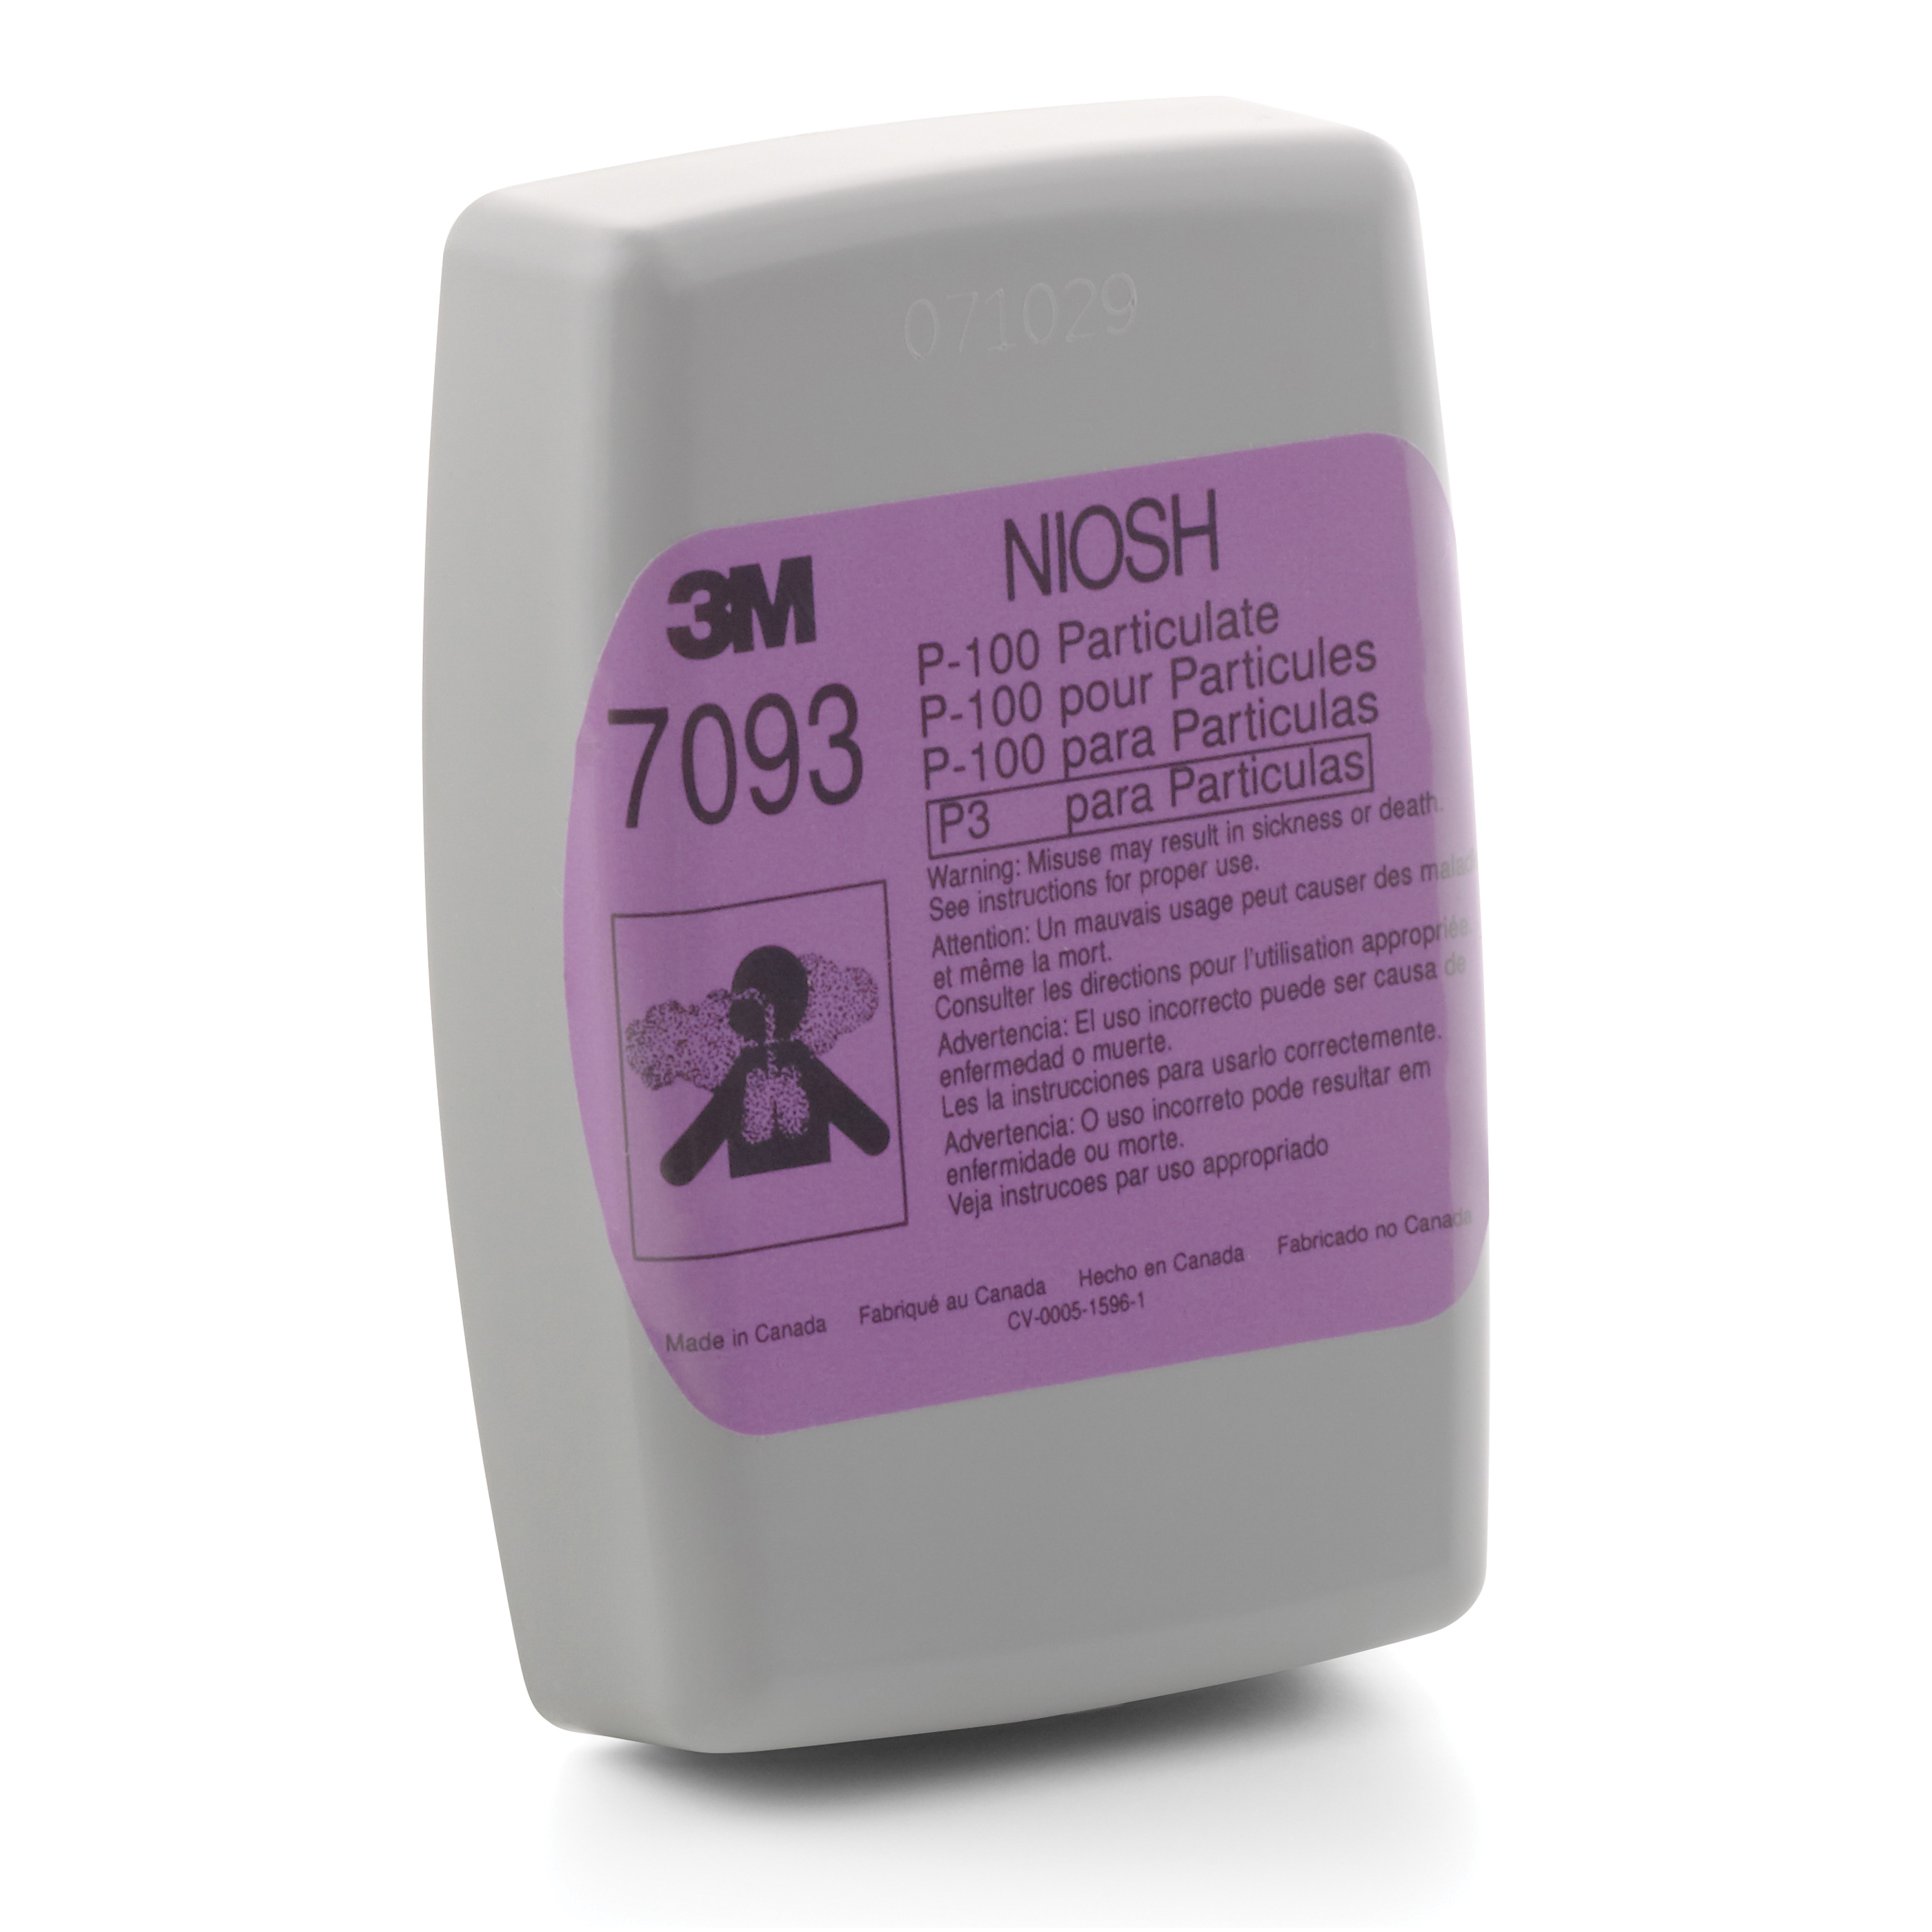 3M™ 051131-37173 7093C Reusable Combinational Respiratory Cartridge With Nuisance Level Organic Vapor and Acid Gas Relief, For Use With 3M™ 6000, 7000, FF-400 Series Half and Full Facepiece Respirators with Bayonet Filter Holder, P100 Filter Class